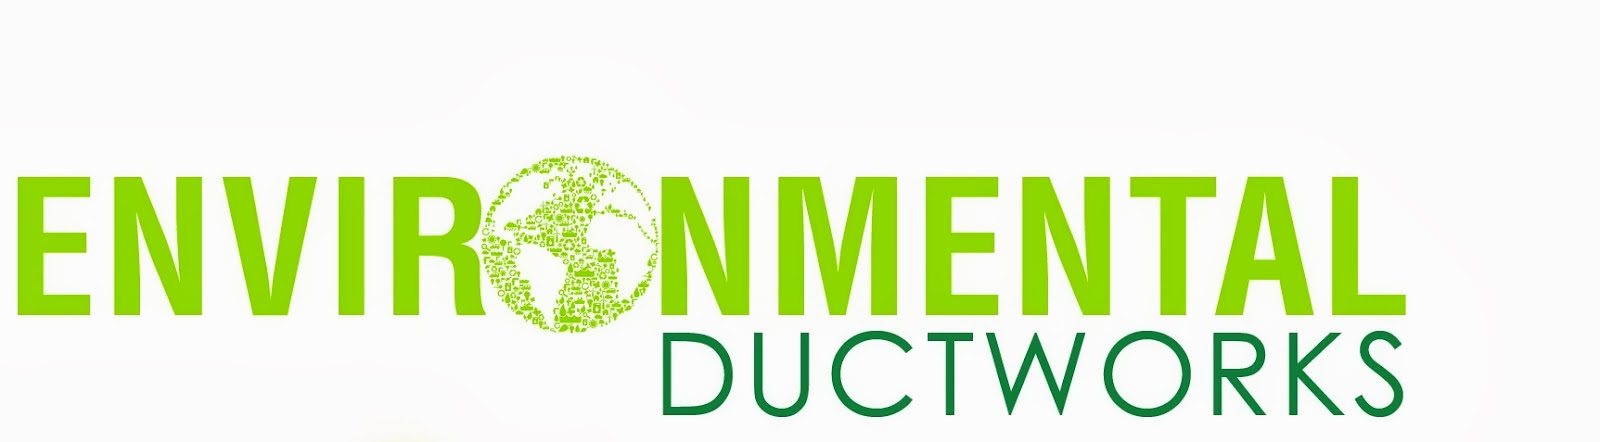 Environmental Ductworks Thousand Oaks - Air Duct & Dryer Vent Cleaning